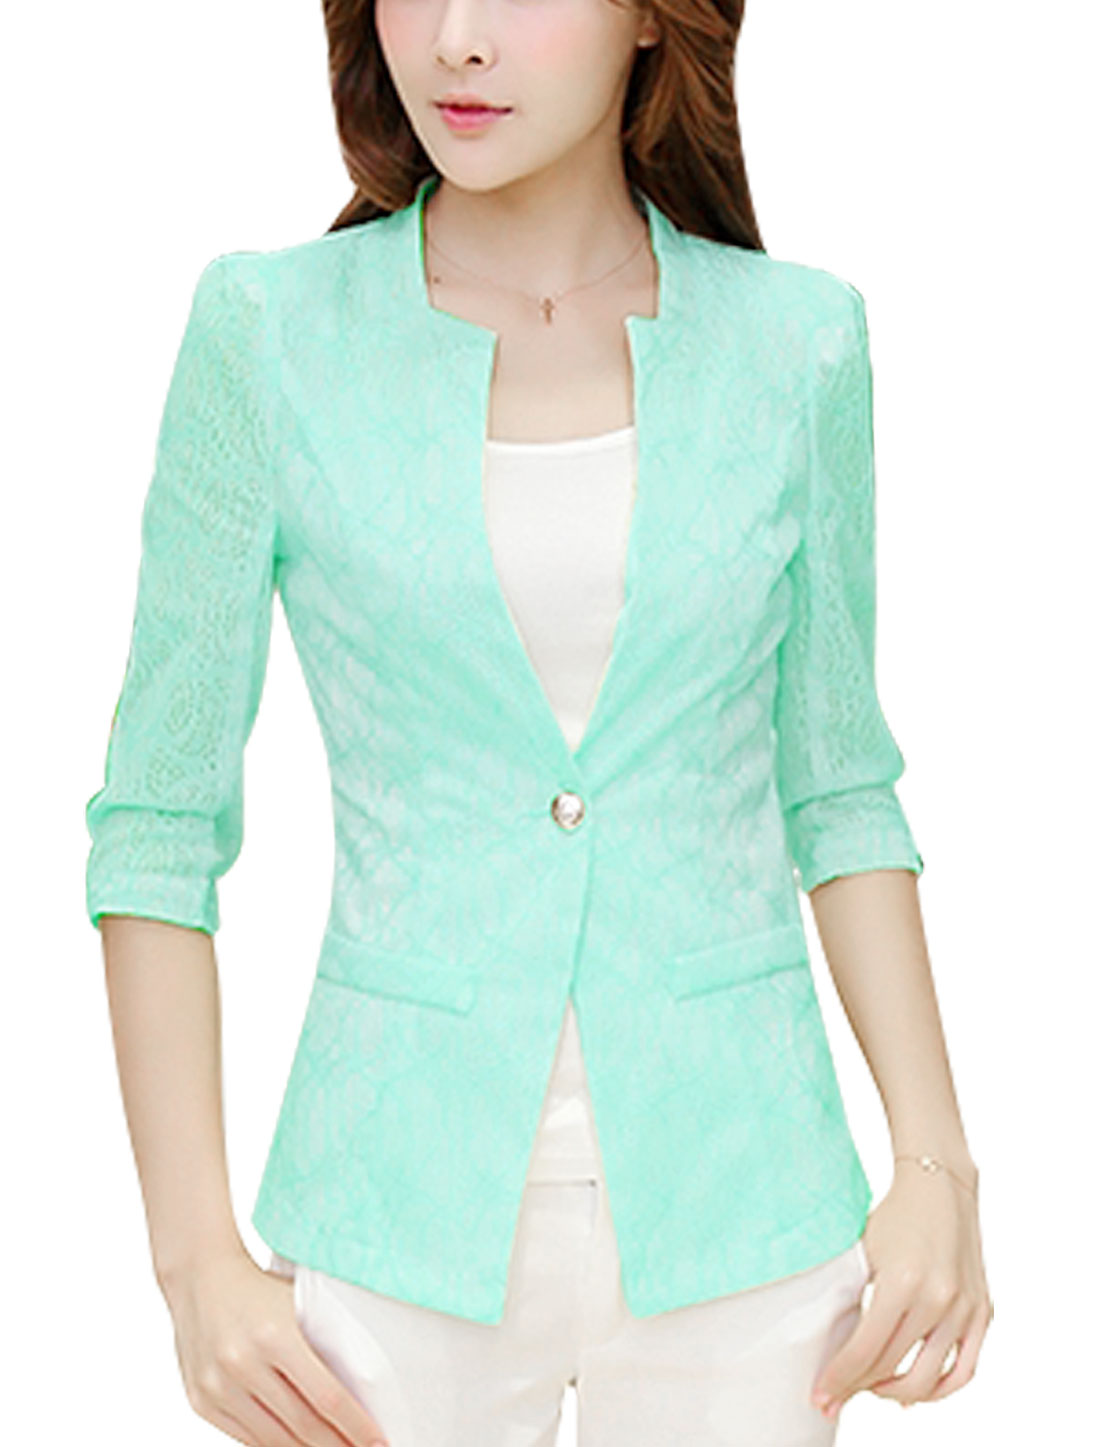 Slim Fit Casual Half Sleeve One Button Closed Blazer Jacket for Lady Light Blue M